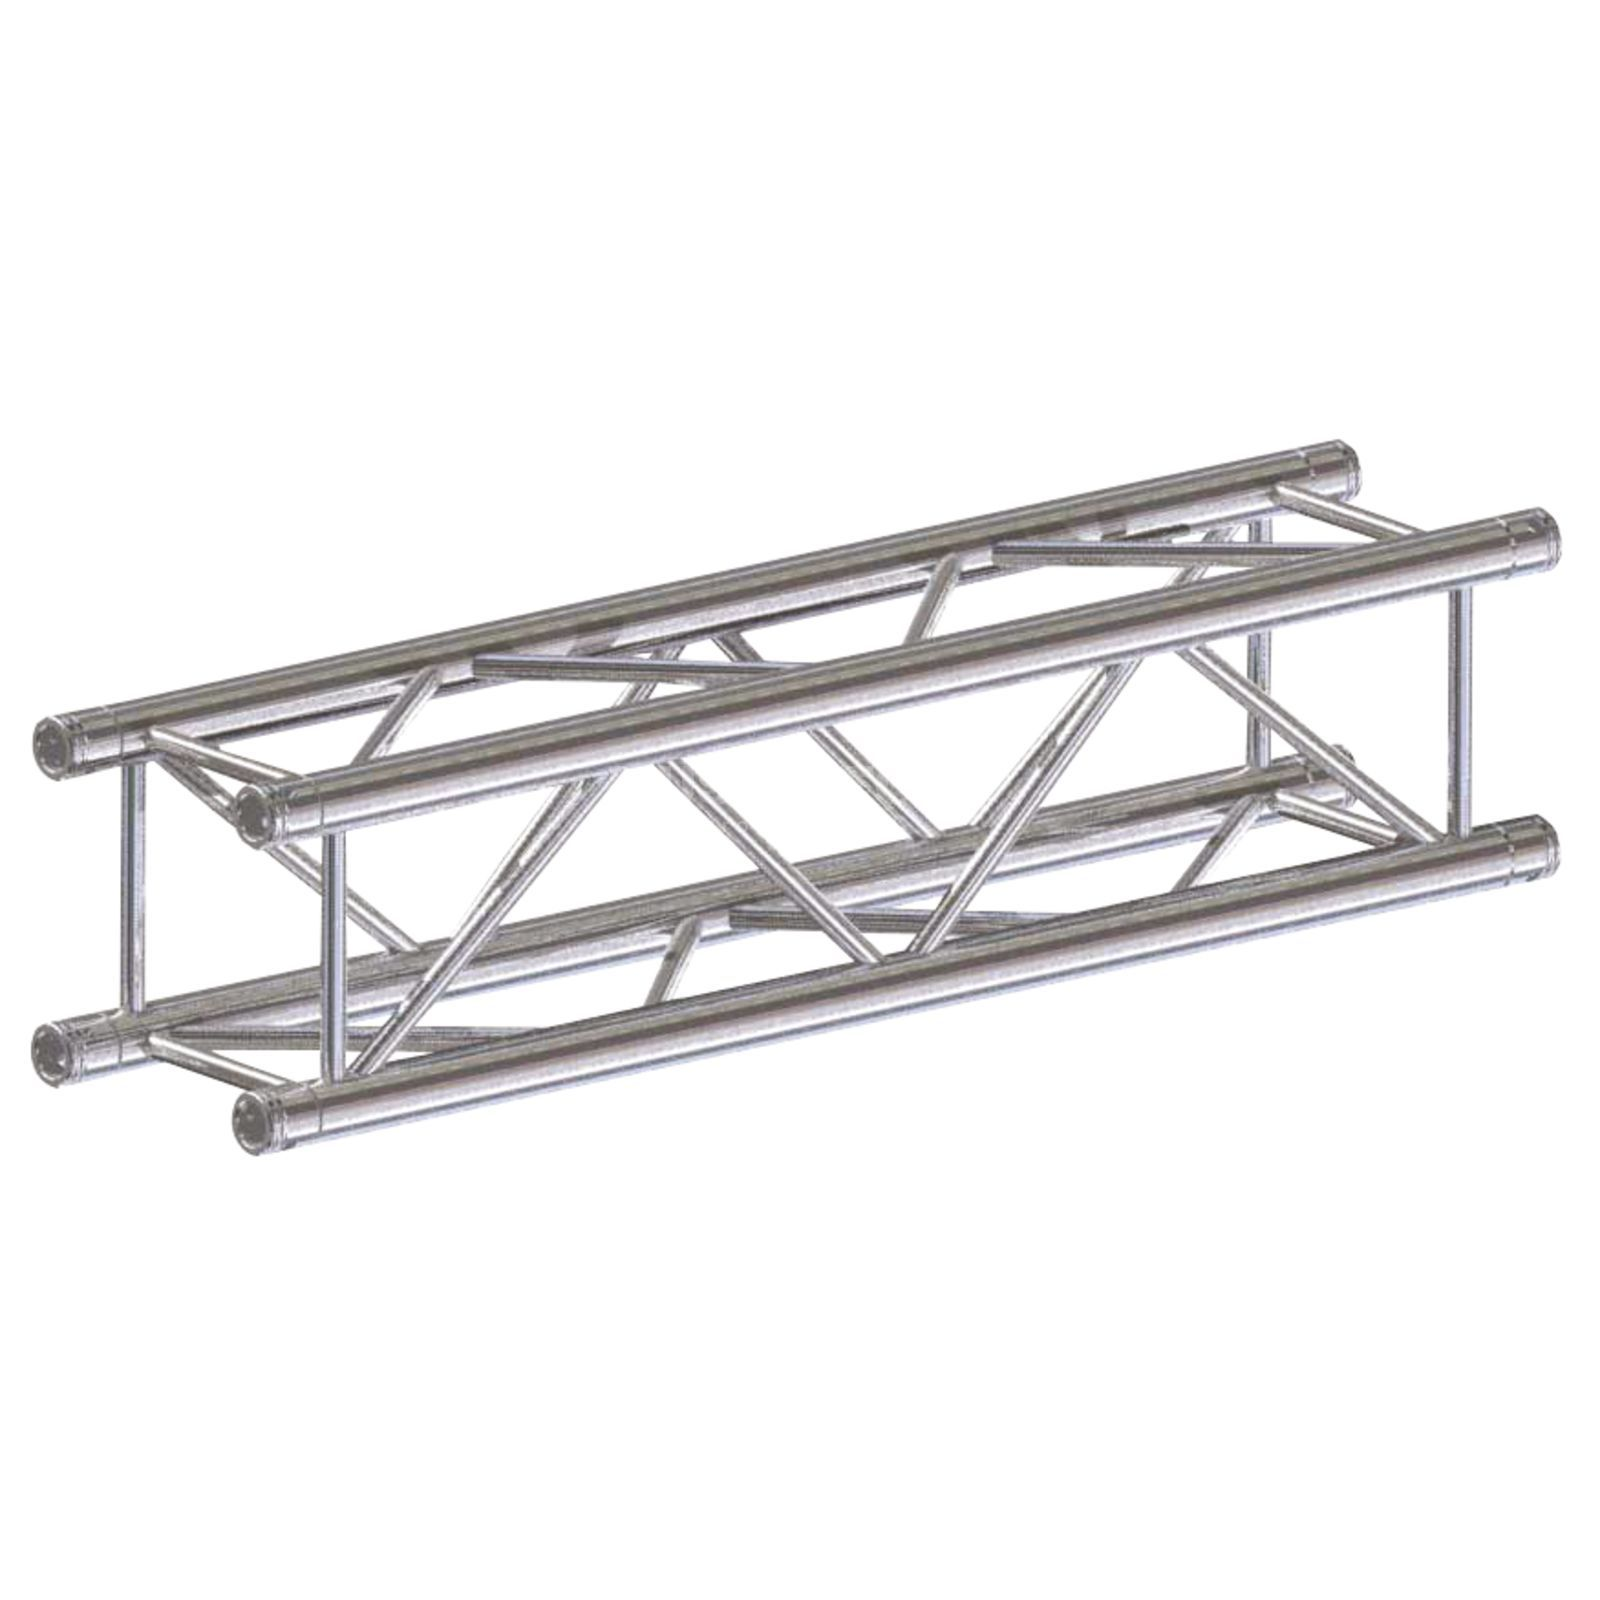 Global Truss F34PL, 50 cm structure carrée  Image du produit